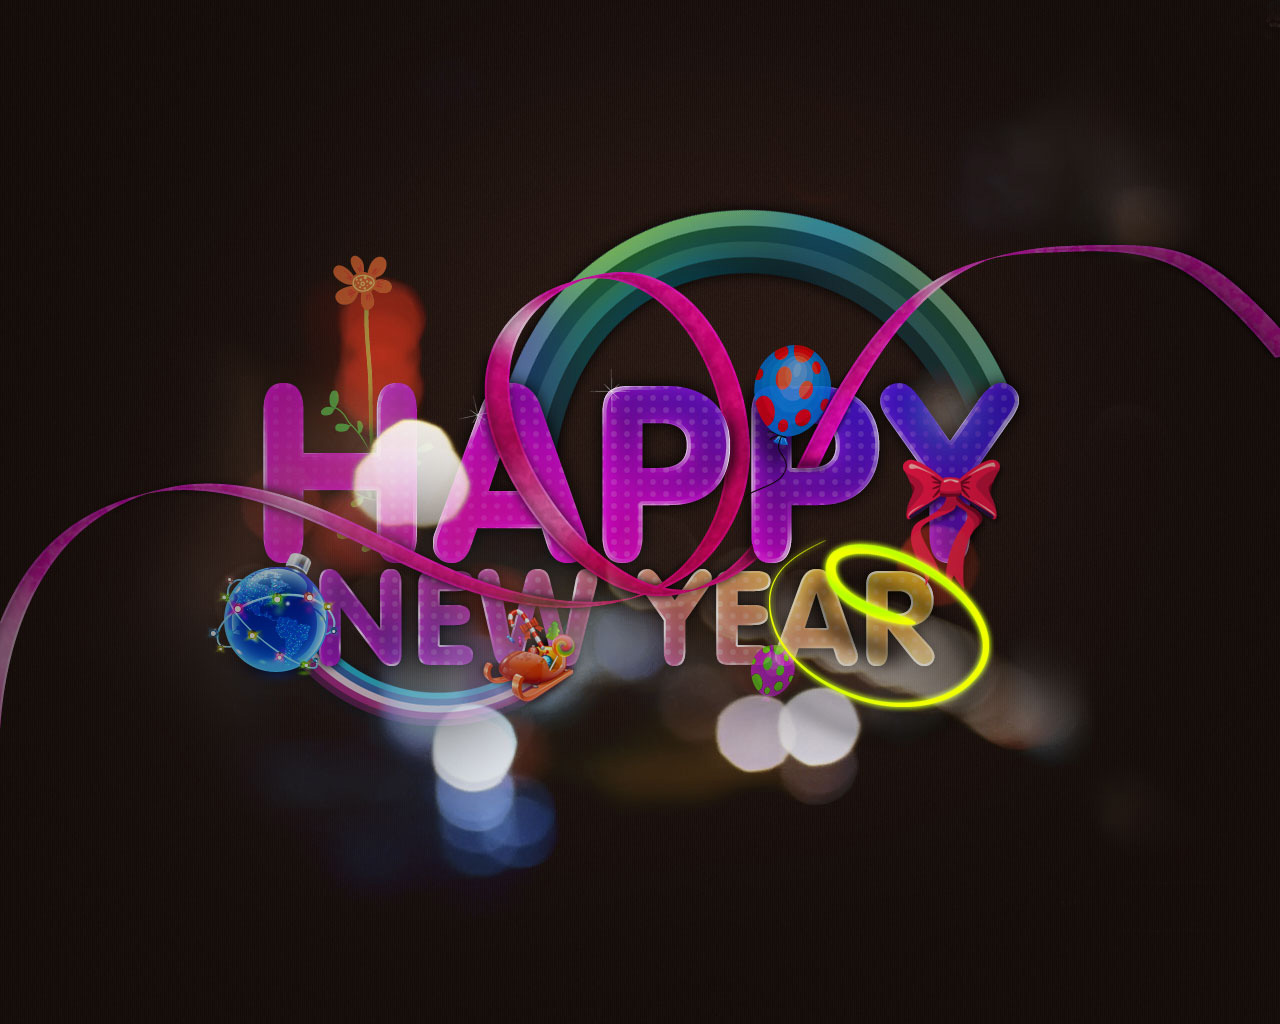 2012 Wallpaper Free HD: Animated New Year WallpaperAnimated New Year Wallpaper